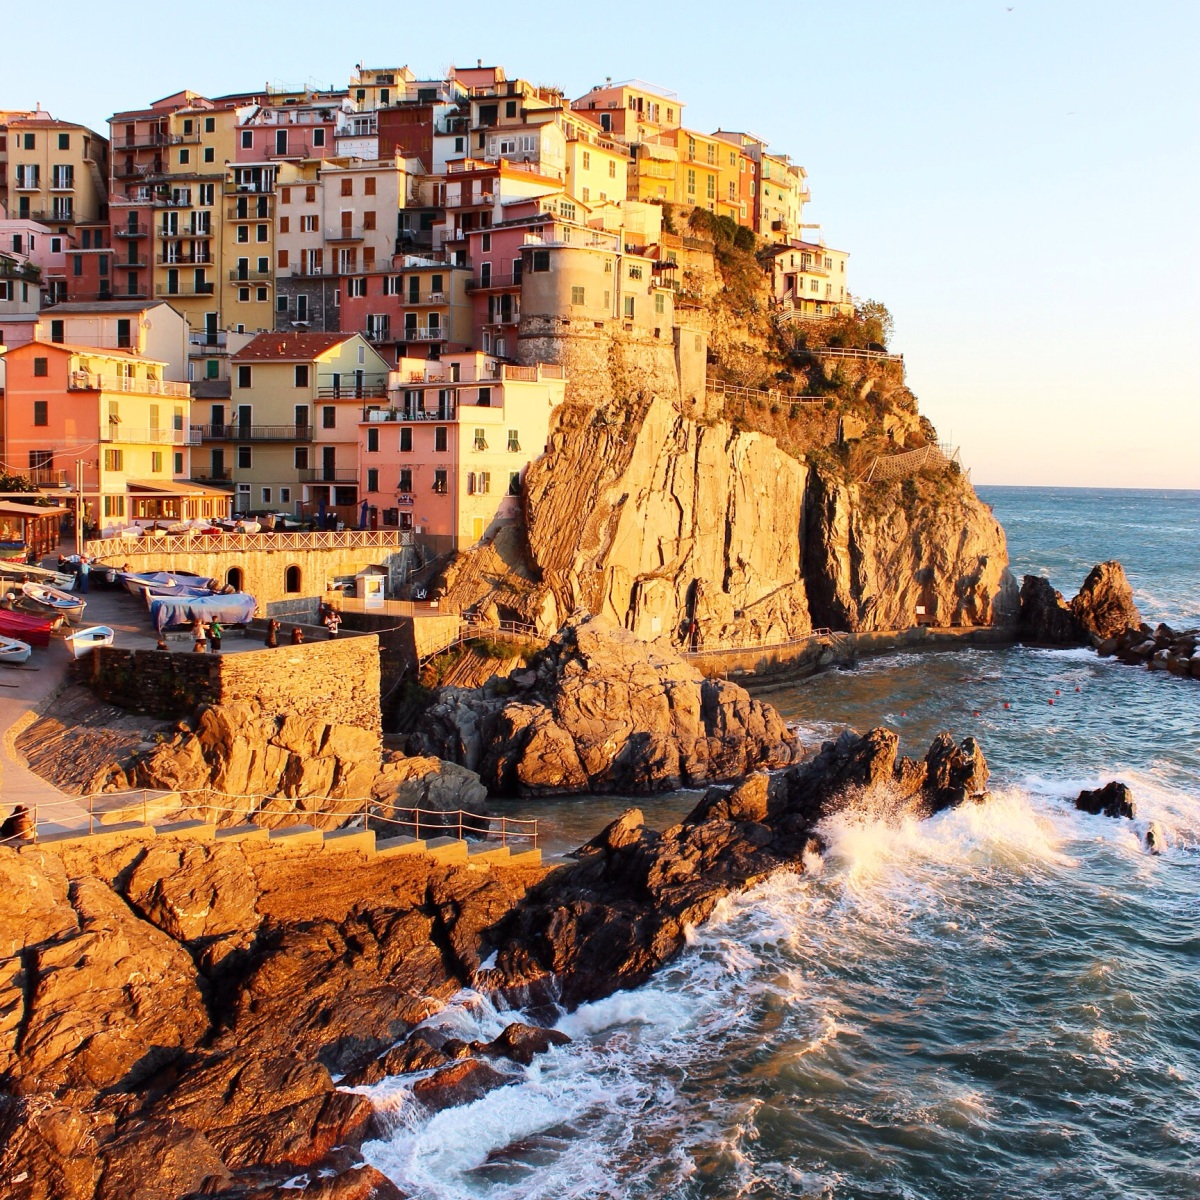 Cinque Terre: A Gypsetter's Guide Through Hiking Through CT (Bikini.com)